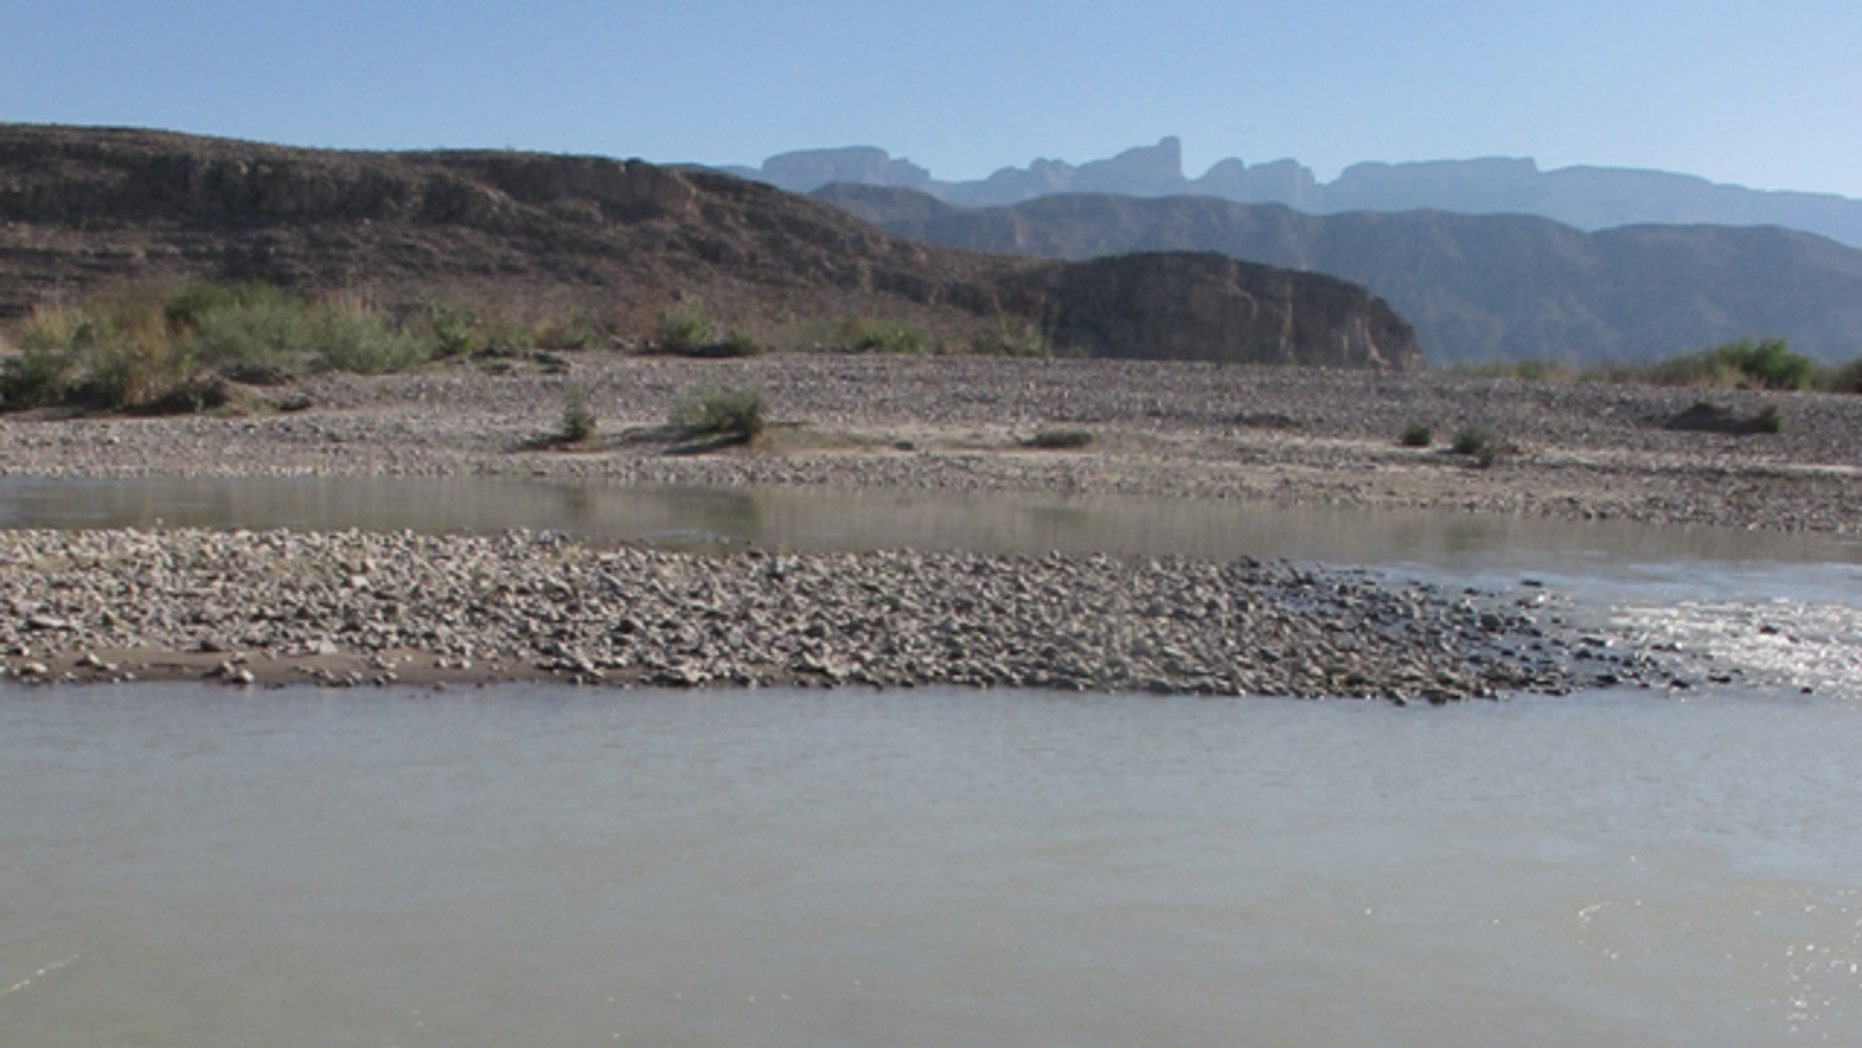 The Rio Grande river flows past Big Bend National Park, Texas, along the border with Mexico.